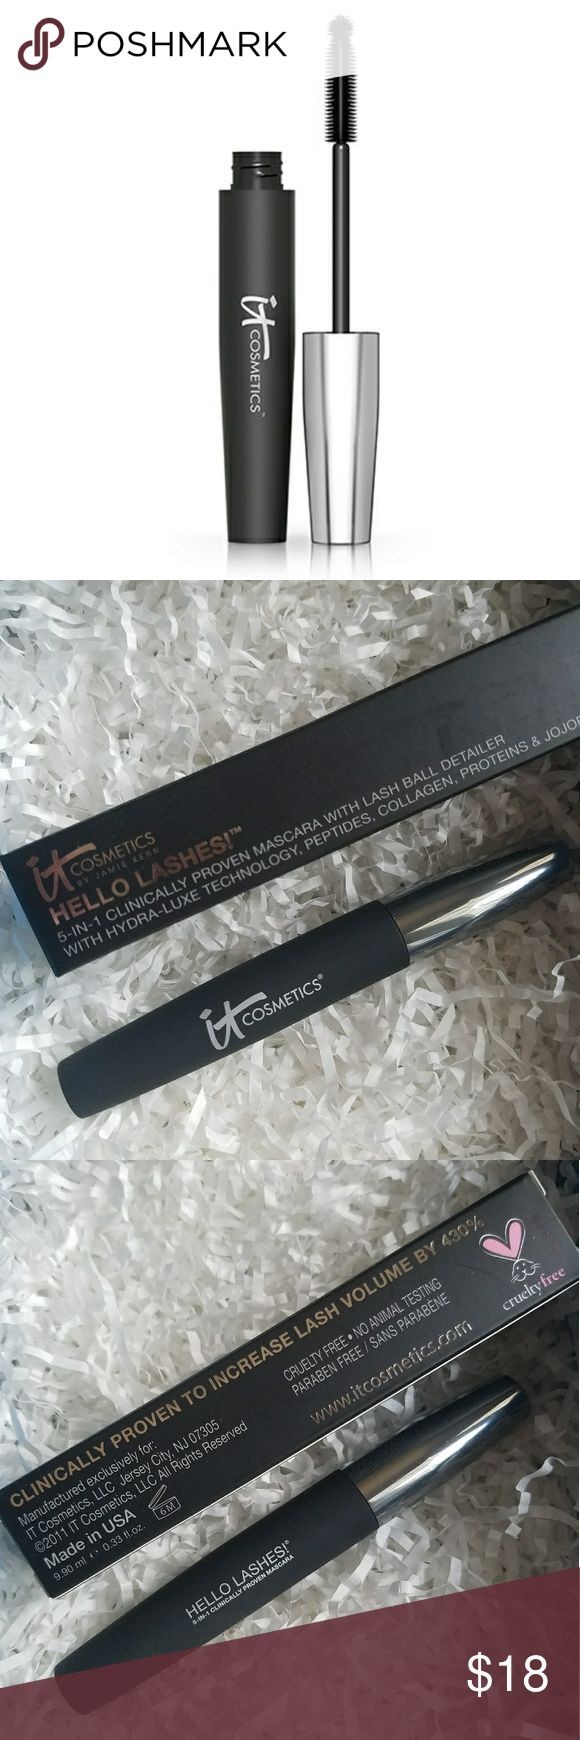 it Cosmetics Hello Lashes Mascara! BNIB / GUARANTEED AUTHENTIC FULL SZ / FREE SHIPPING  CURRENTLY SOLD OUT ONLINE  #1 best-selling, award-winning mascara! Lash-loving biotin, collagen, proteins, jojoba, saw palmetto and amino acids  Delivers 5 products, all in one: Volumizing mascara Conditioning primer Peptide-infused lash serum Lash tint Lash comb/curler  Quadruples the look of your lashes!  Increases lash volume by 430%!  Other it Cosmetic products avail!   Bundle and Save  Please chk out…